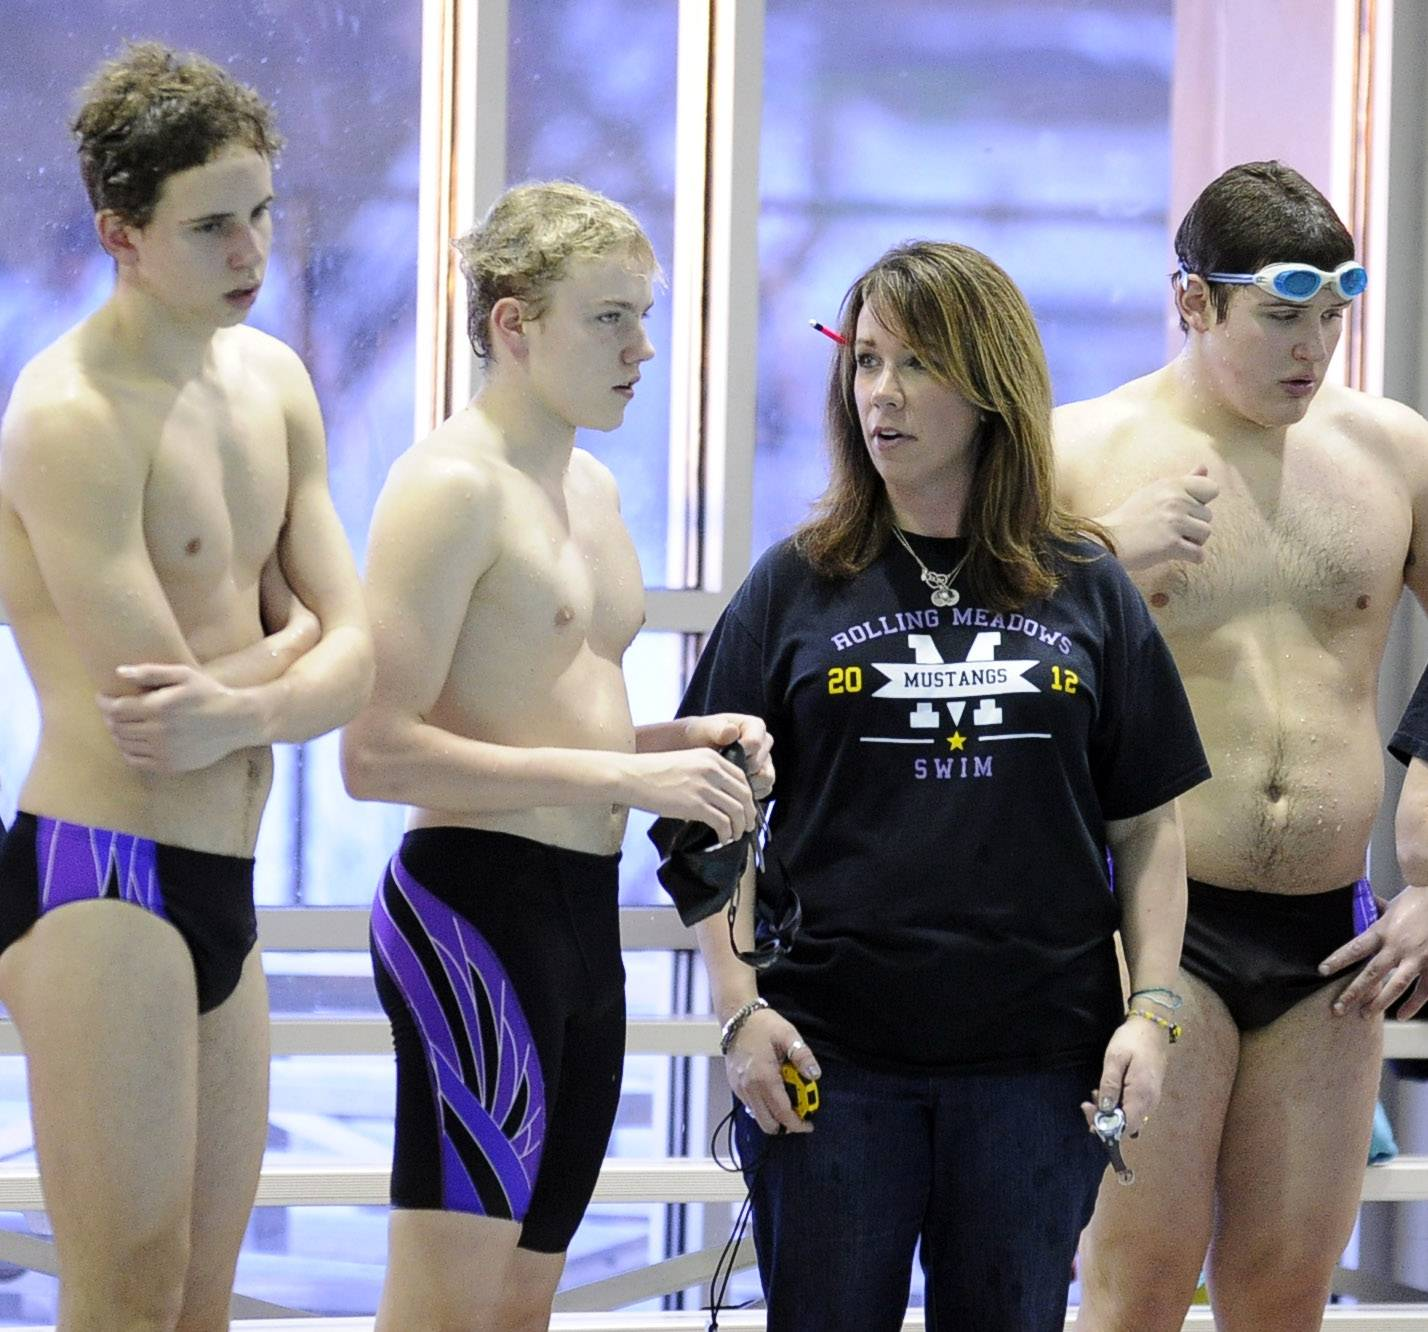 Monika Chiappetta, right, was selected as the IHSA's boys swimming coach of the year after her efforts with last school year's high-achieving team at Rolling Meadows.